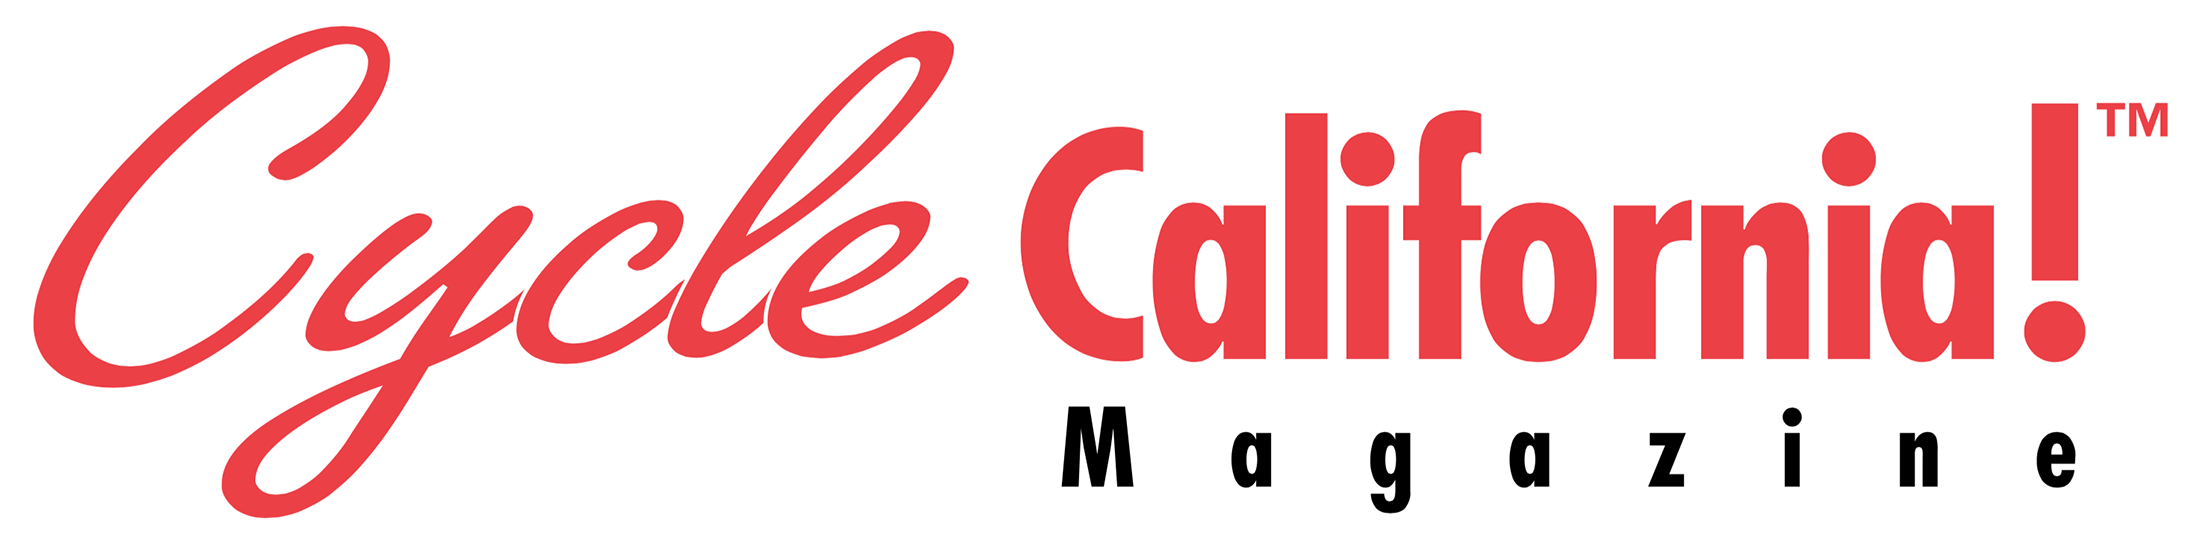 Cycle California Magazine logo